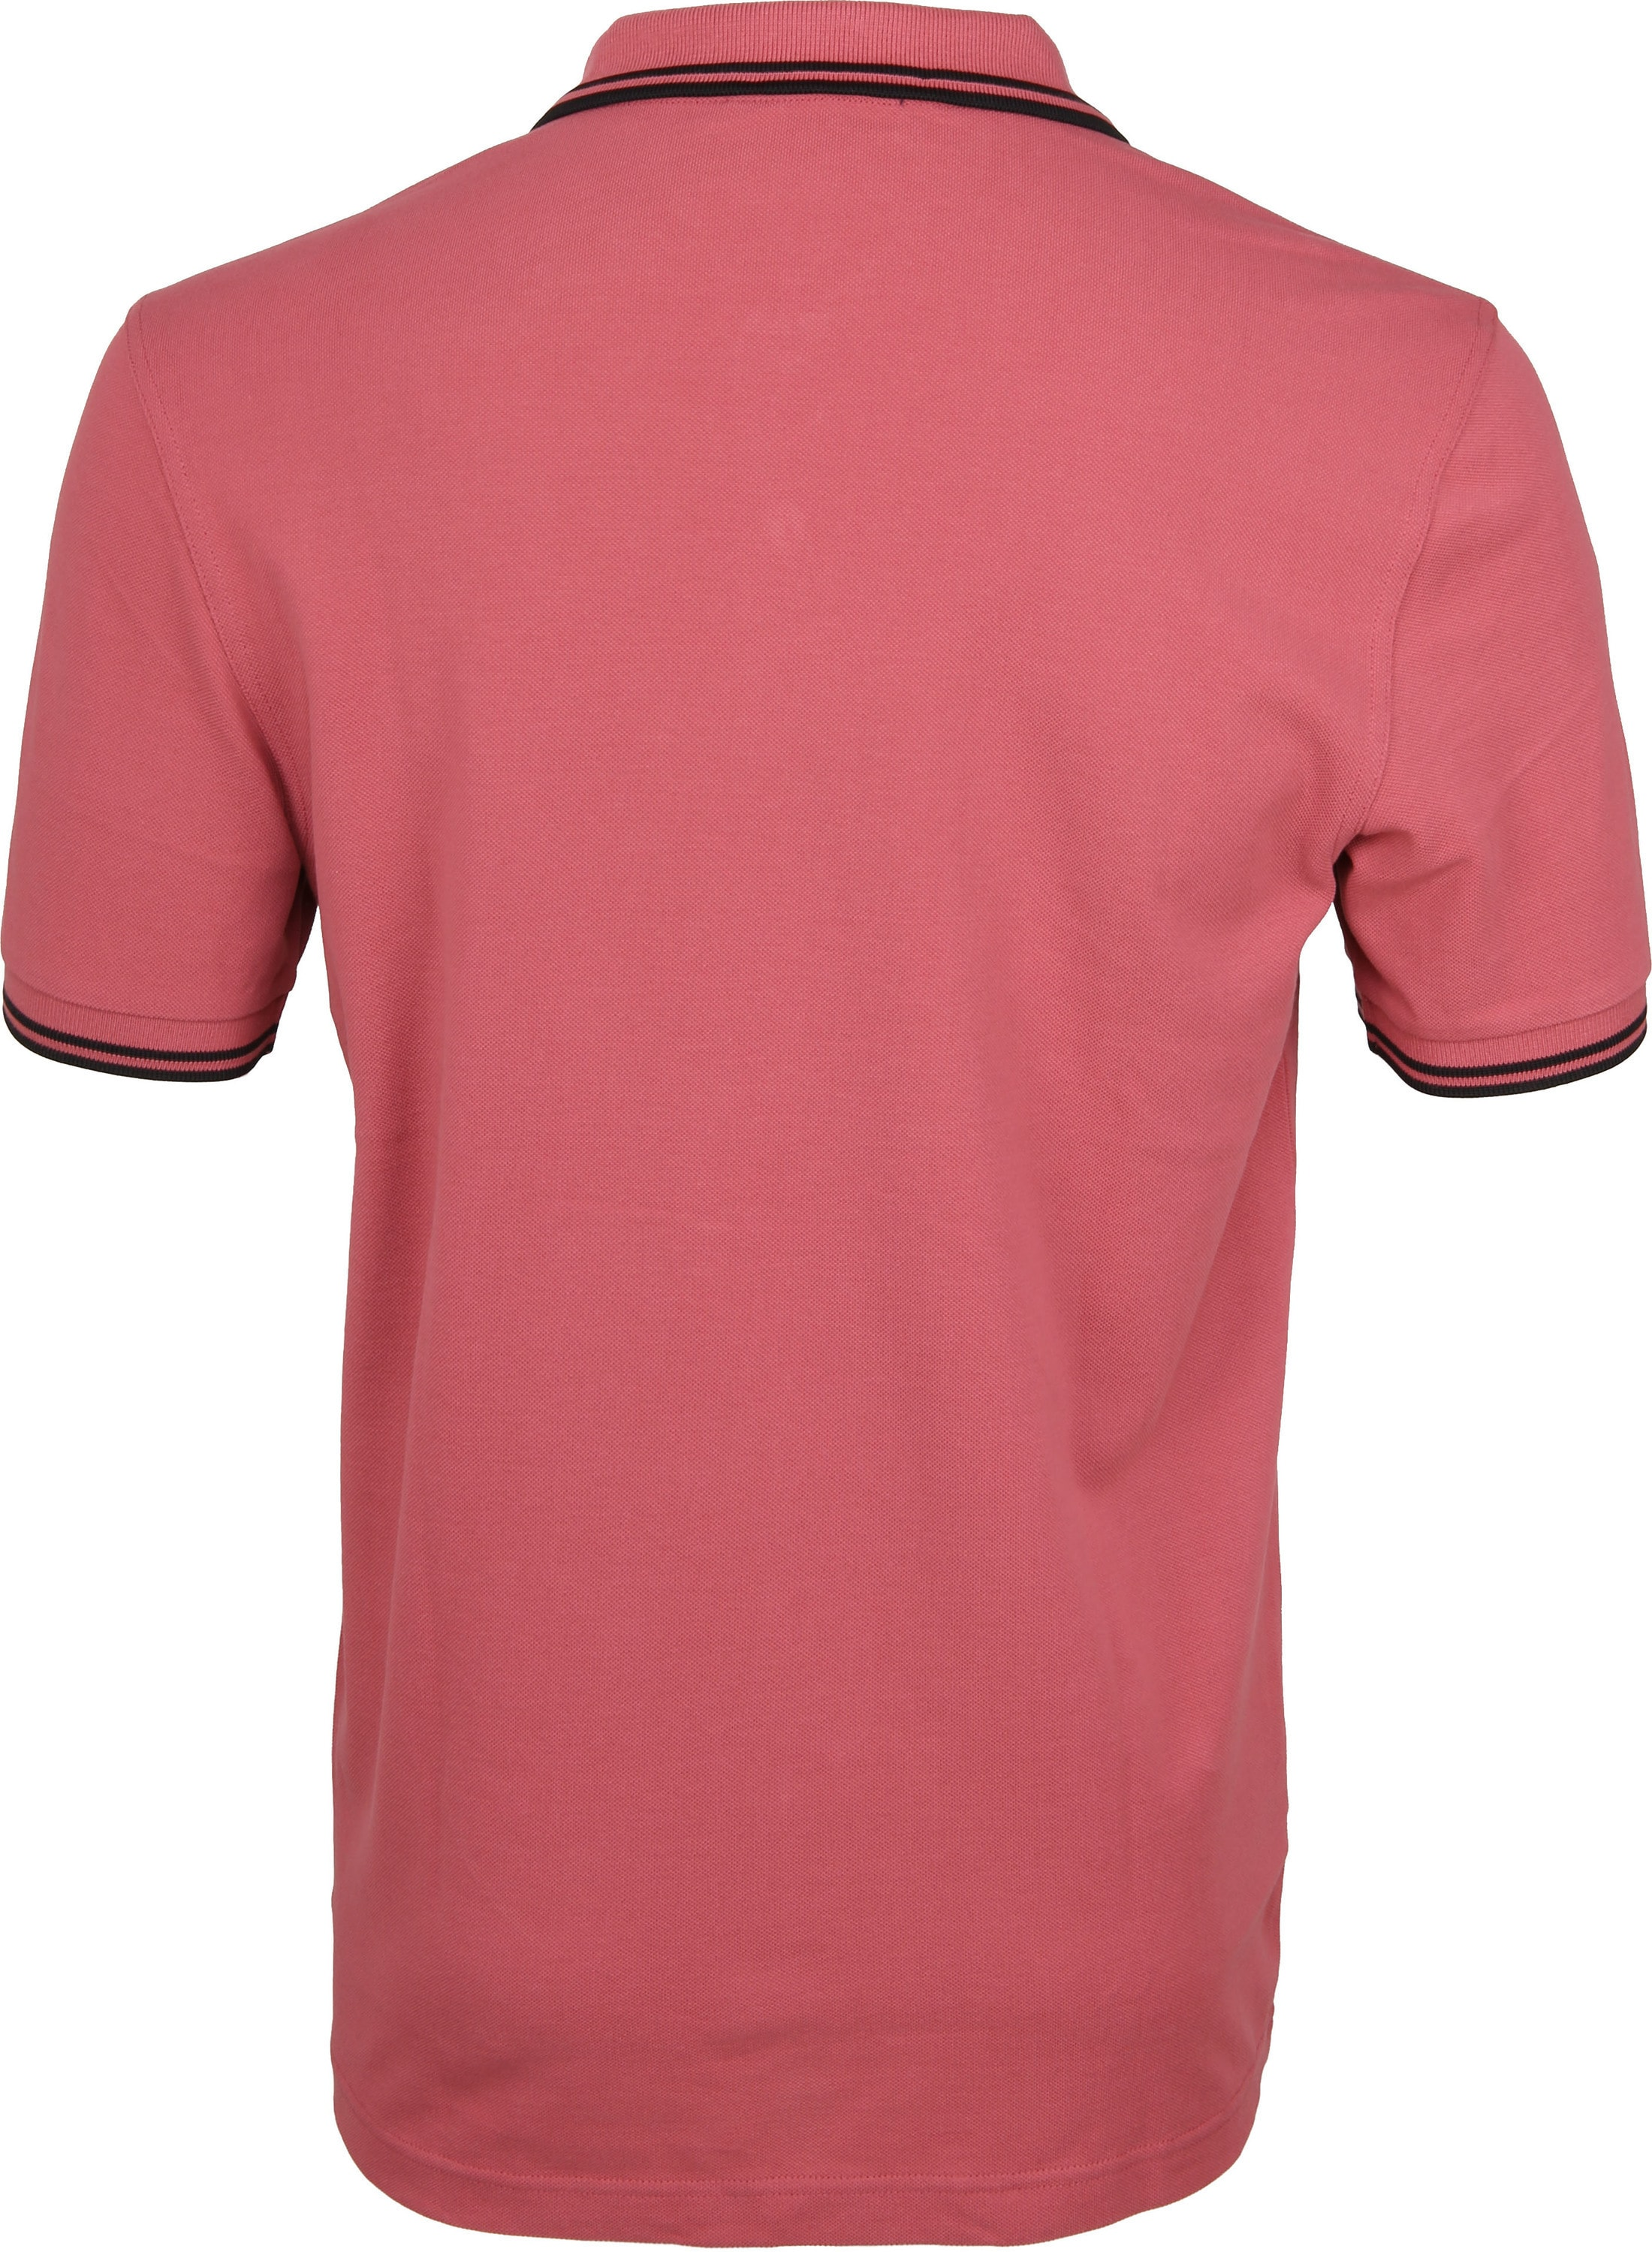 Fred Perry Polo Roze I09 foto 2